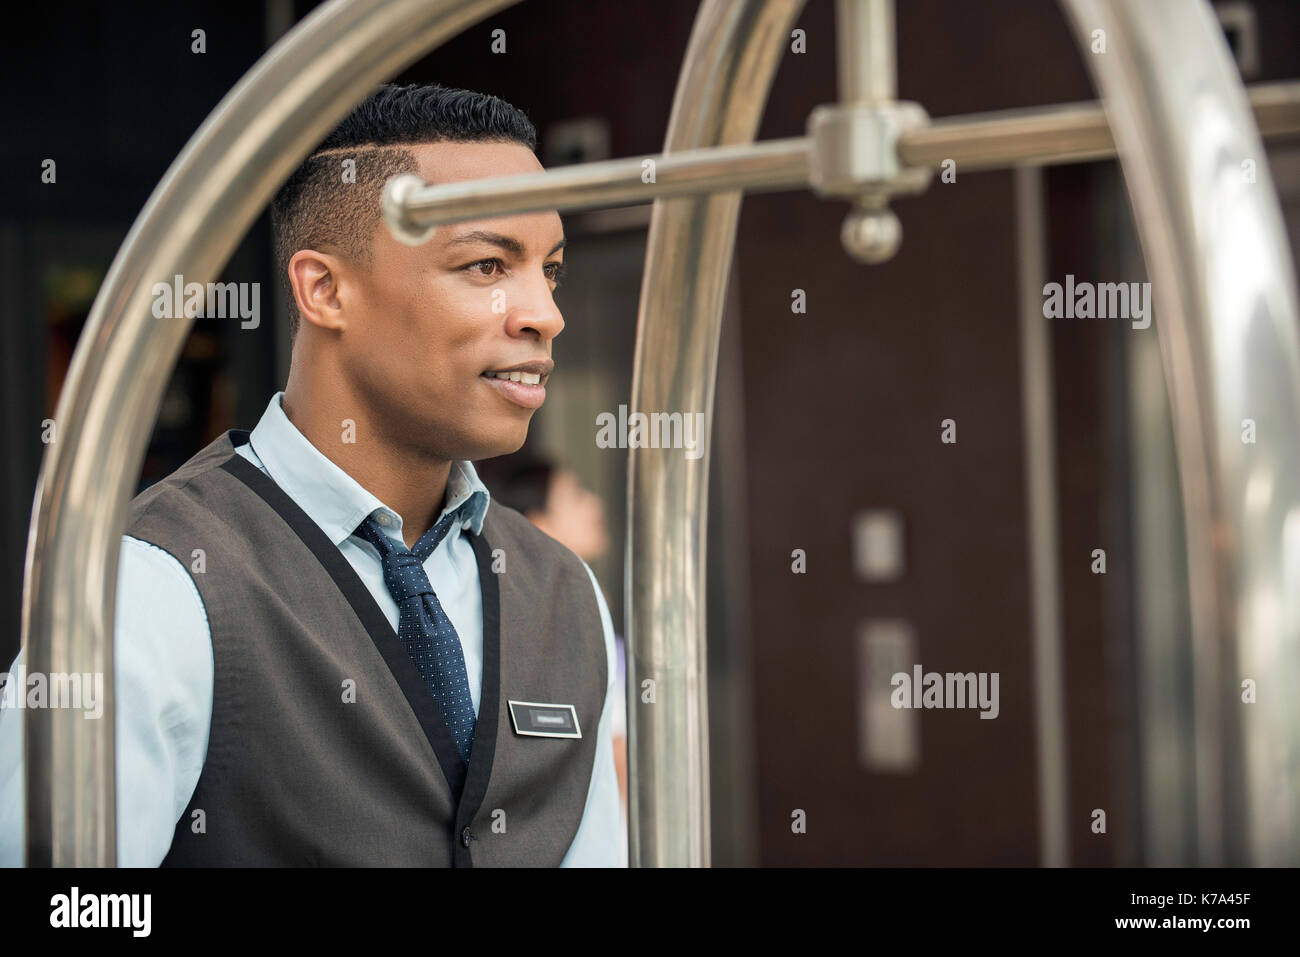 Hotel bellboy - Stock Image